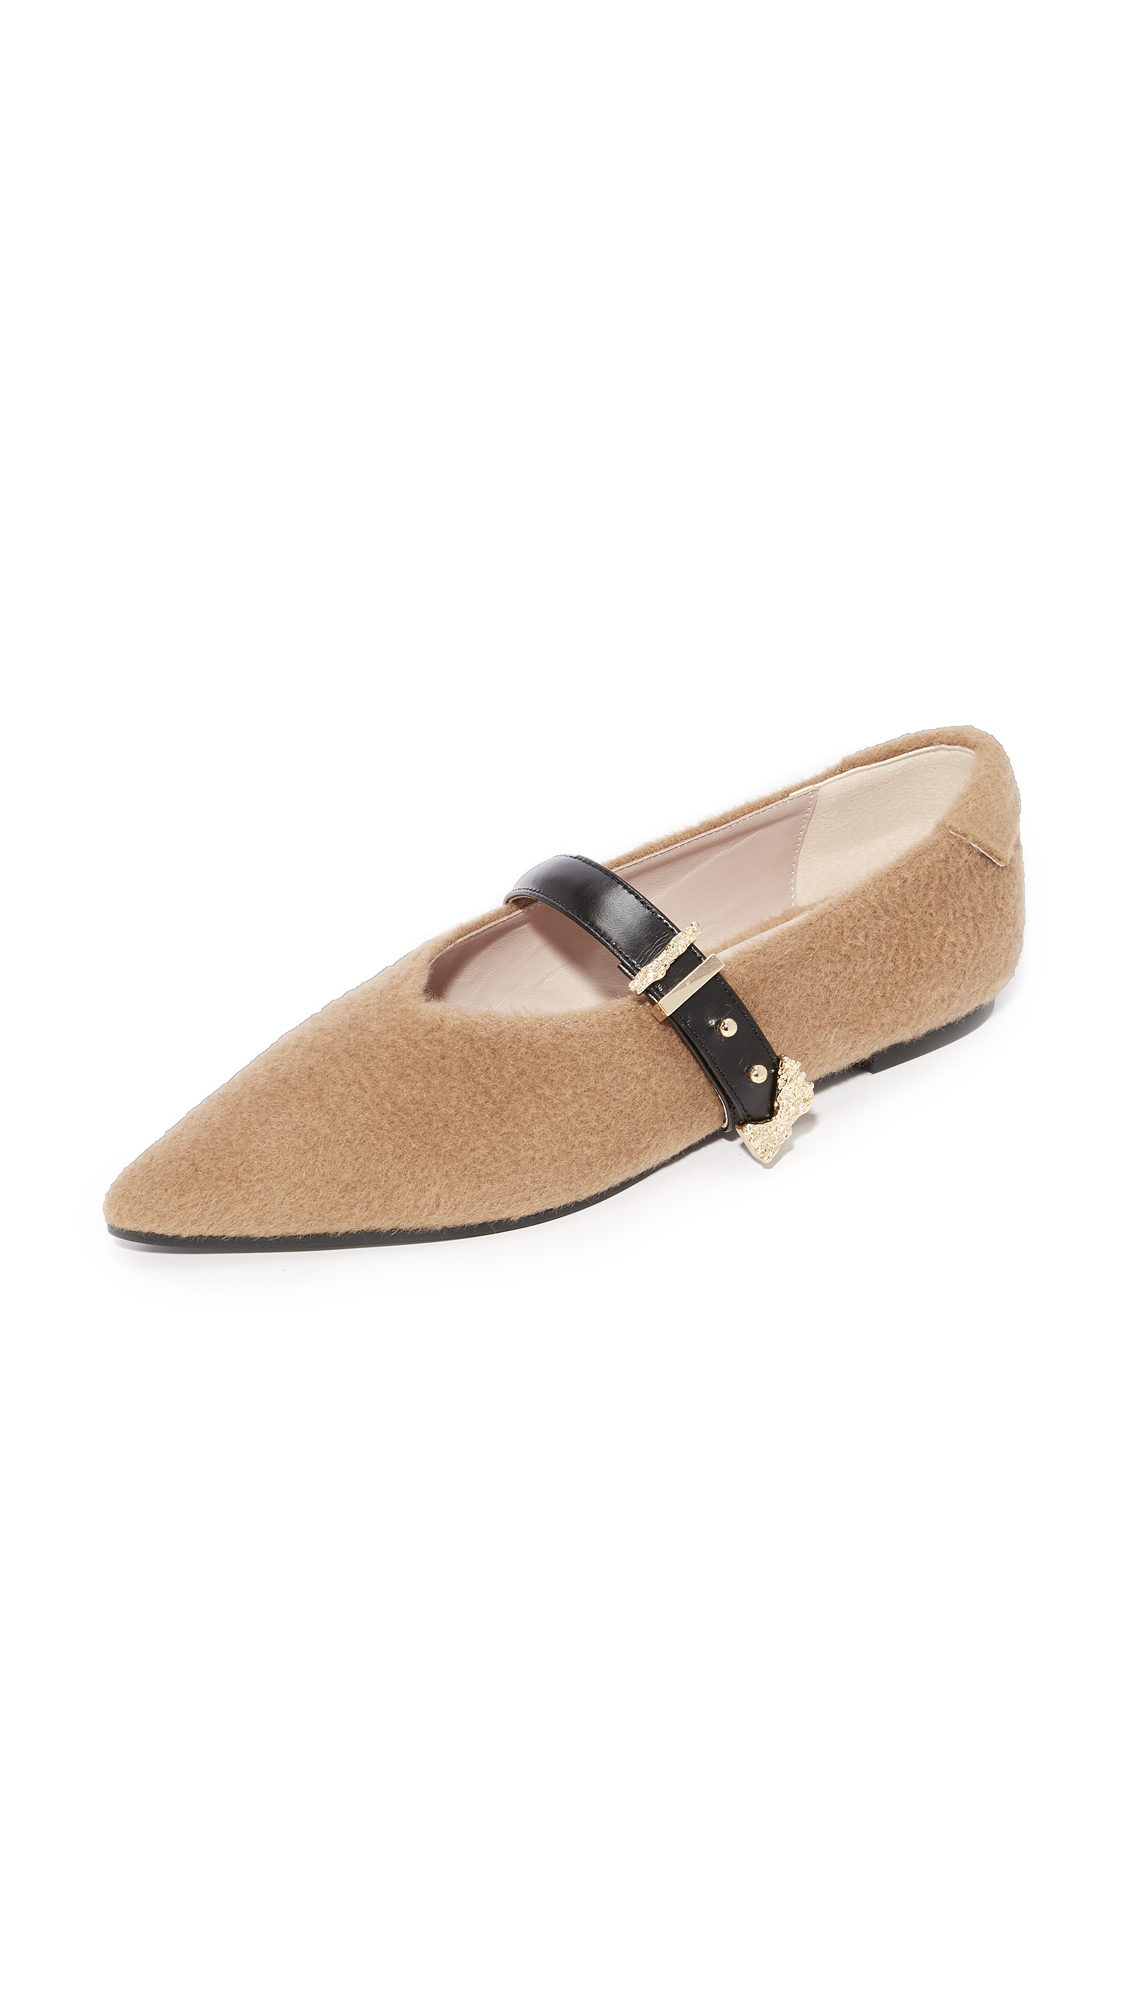 Reike Nen Pointed Buckle Flats - Camel/Black